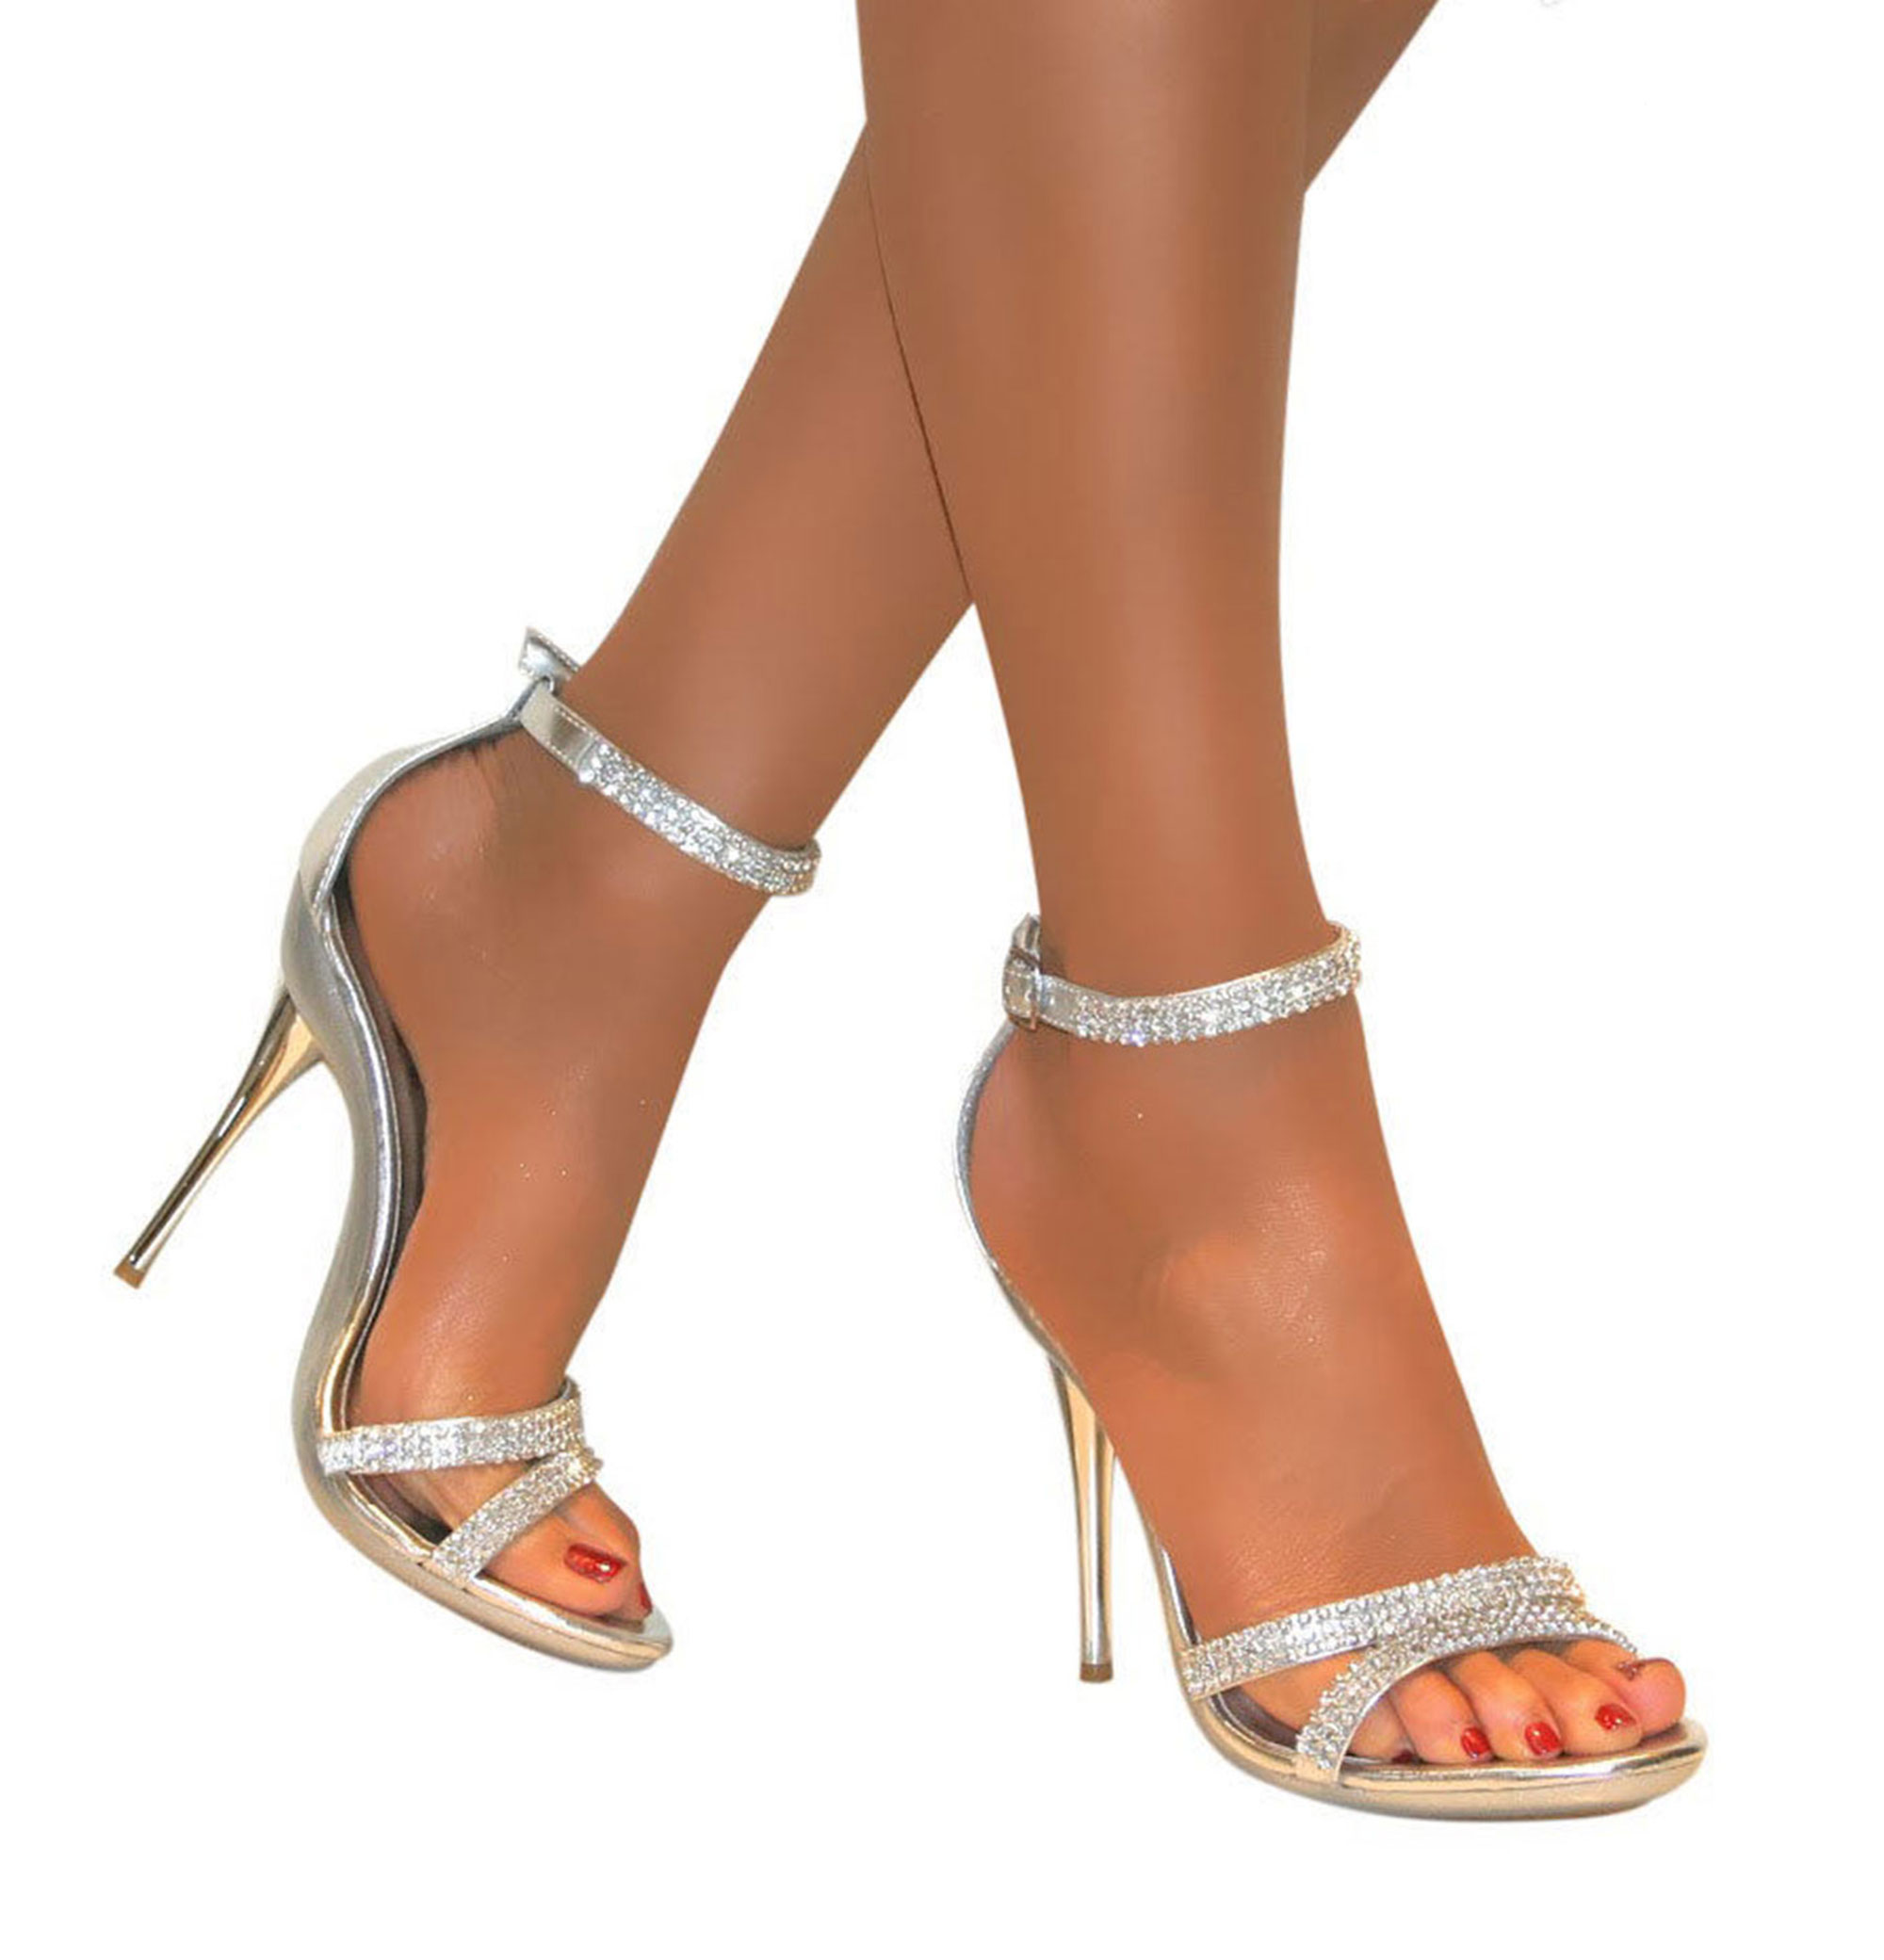 Amazoncom Silver High Heels  Pumps  Shoes Clothing